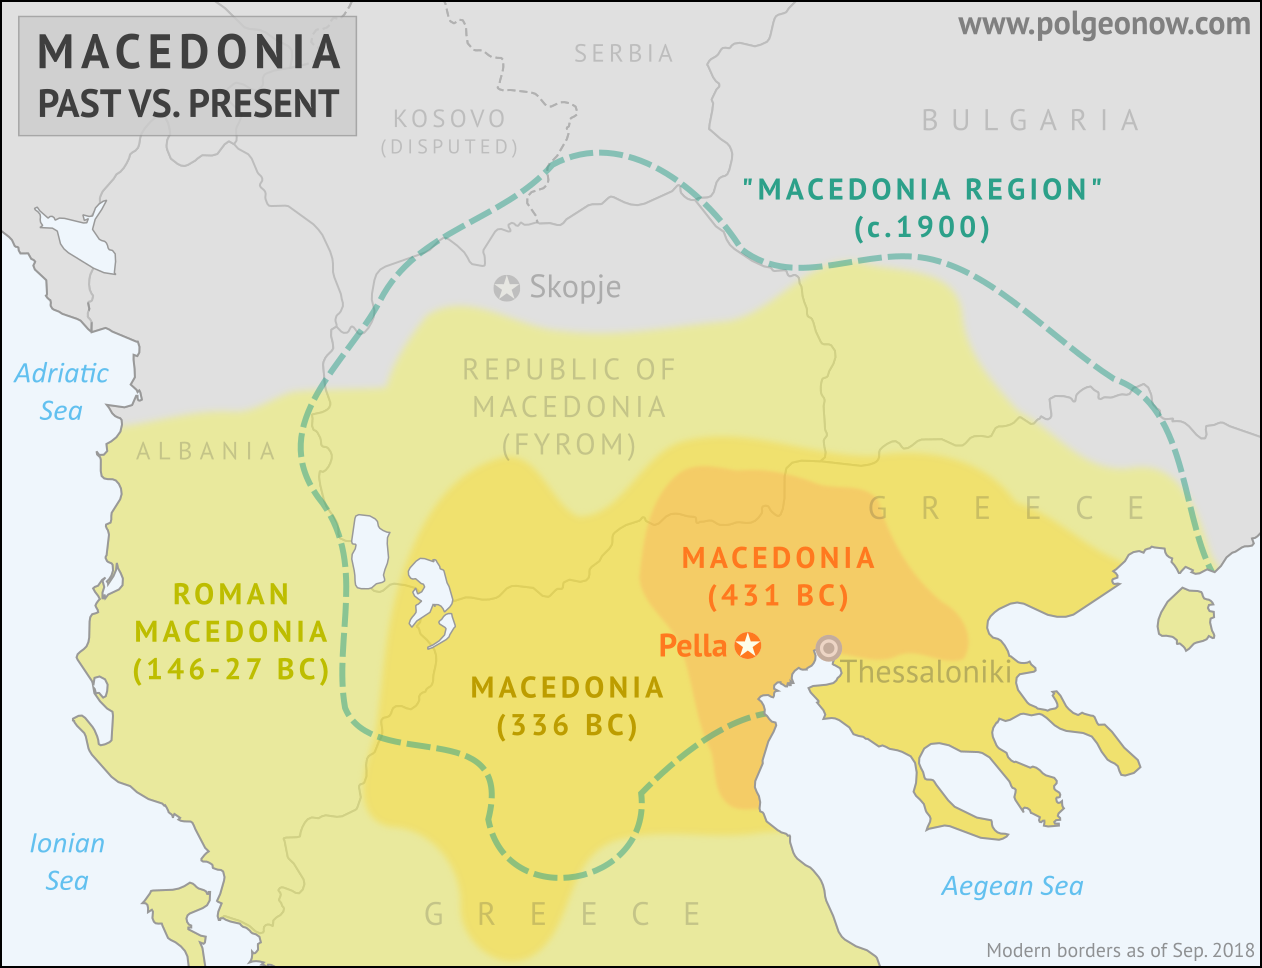 Ancient Macedonia Map From Polgeonow 5